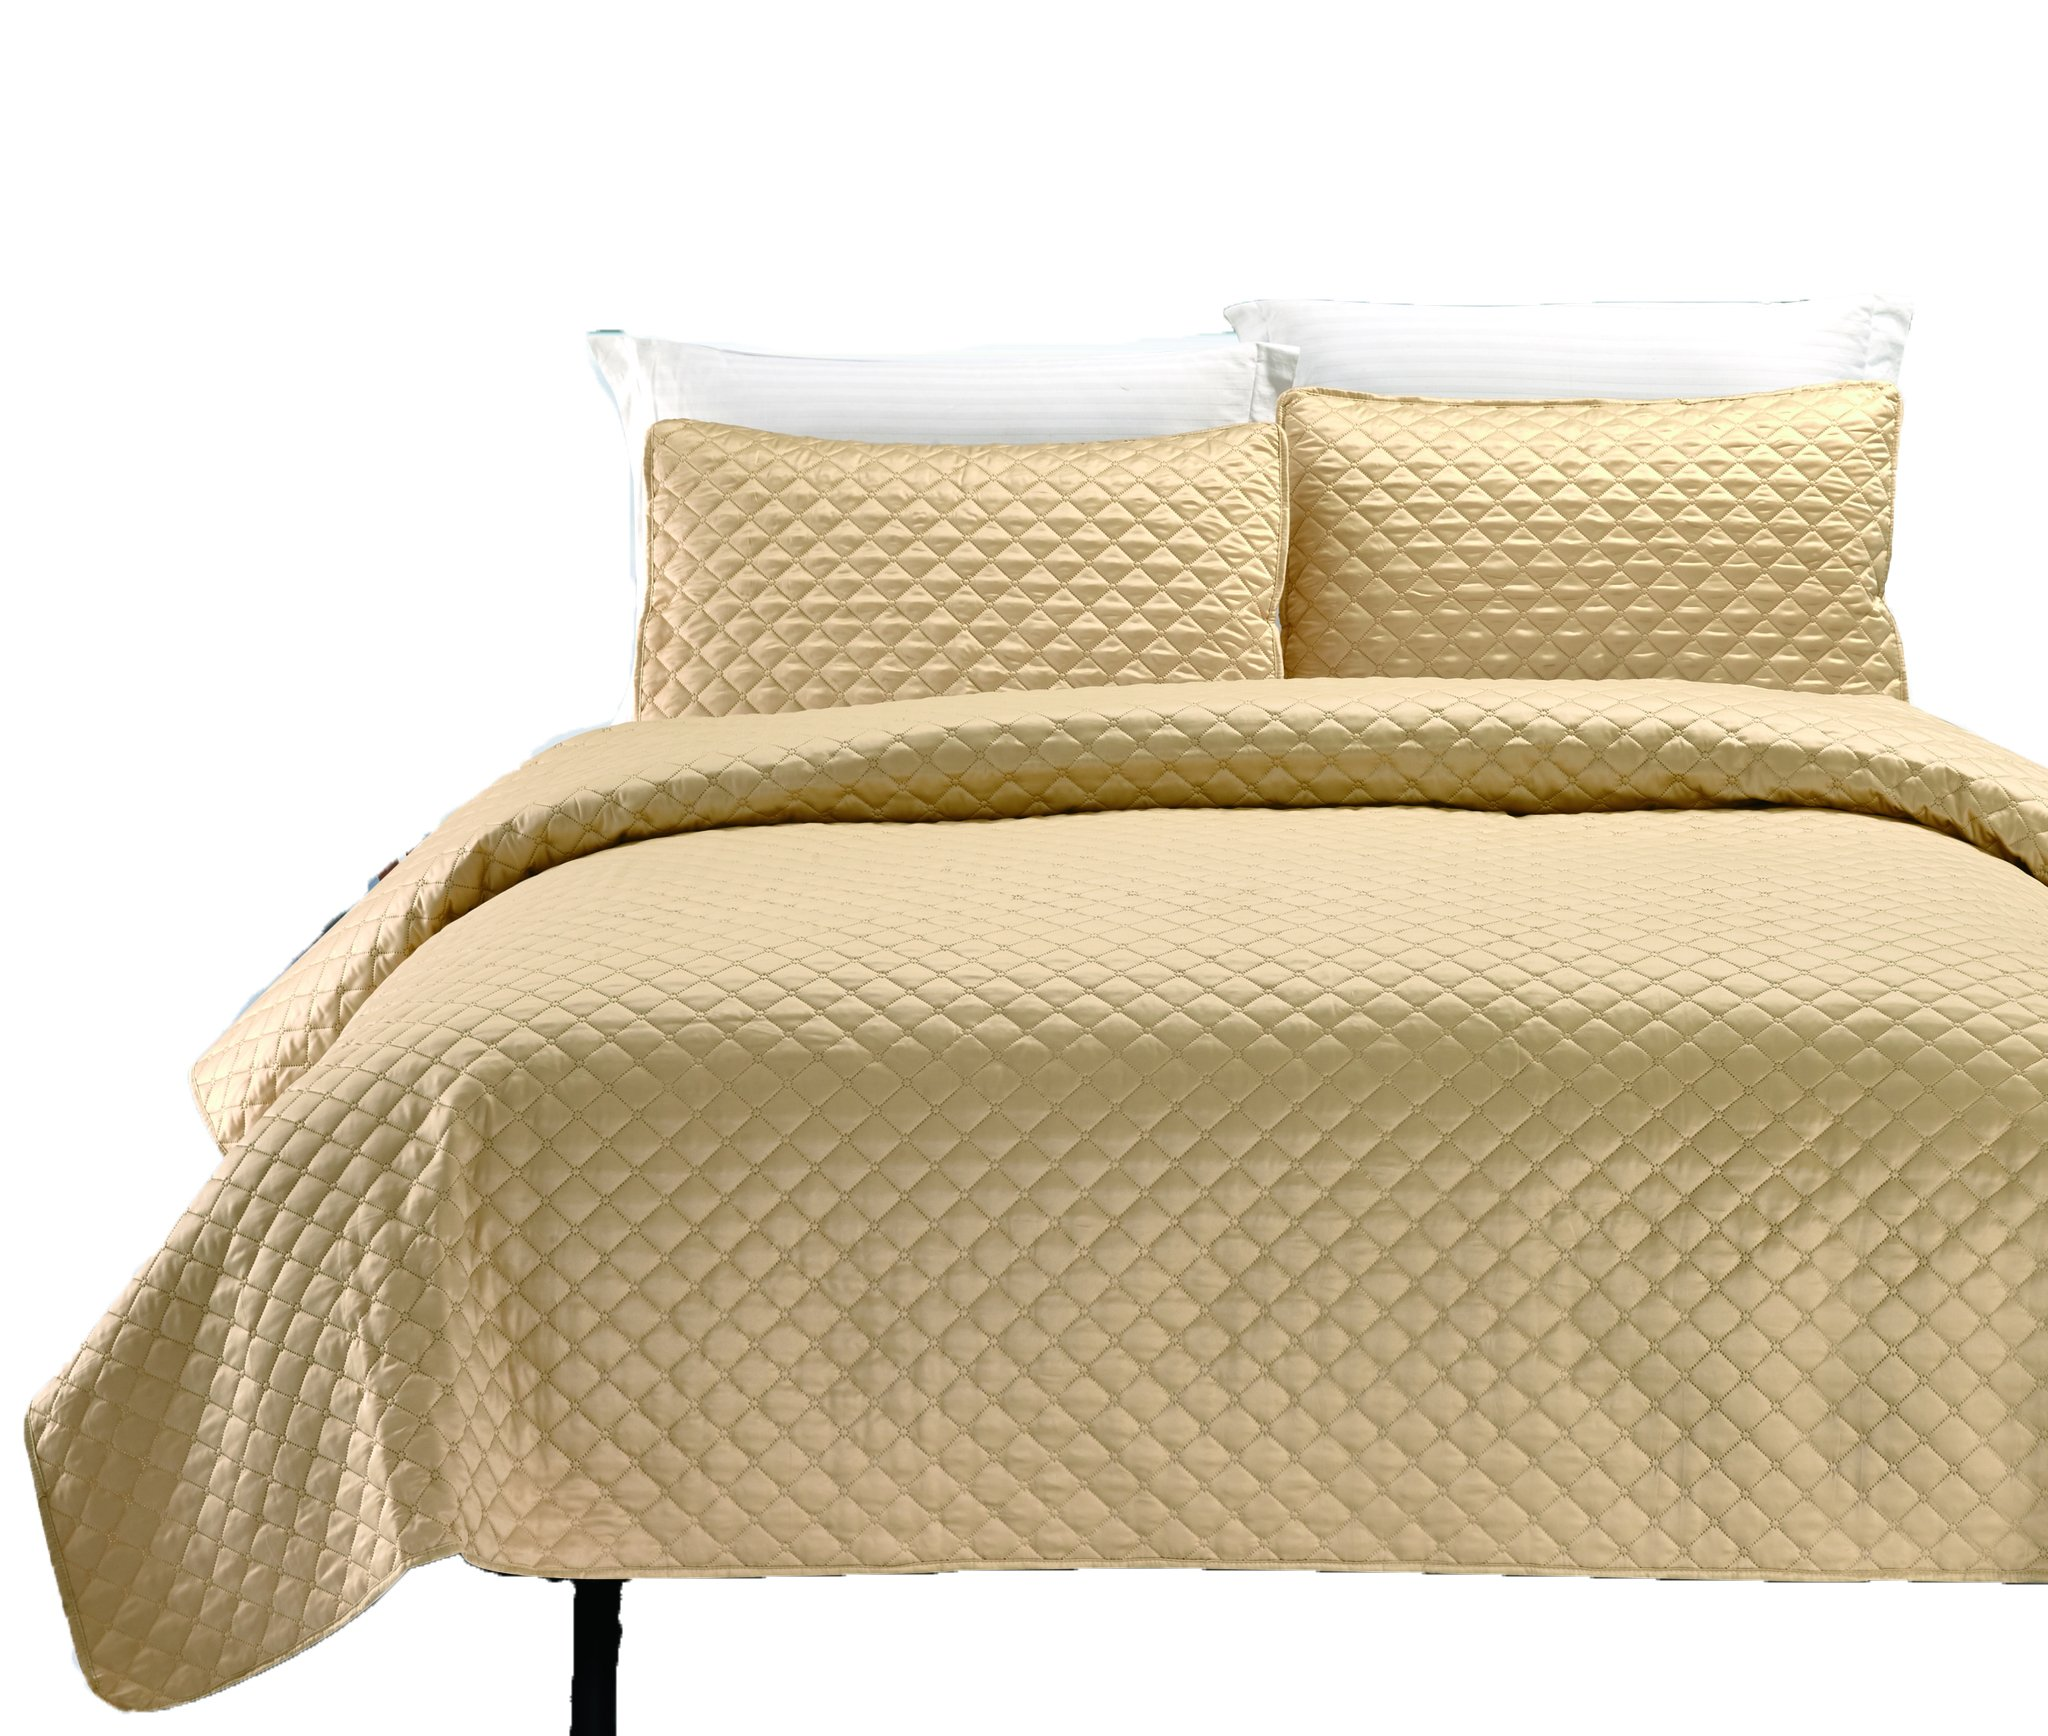 California Design Den Hotel-Style 3 Piece Quilt Set Luxury Lightweight Coverlet Sets Finely Stitched Bedspread and Shams with Soft Silky Feel Full/Queen Gold